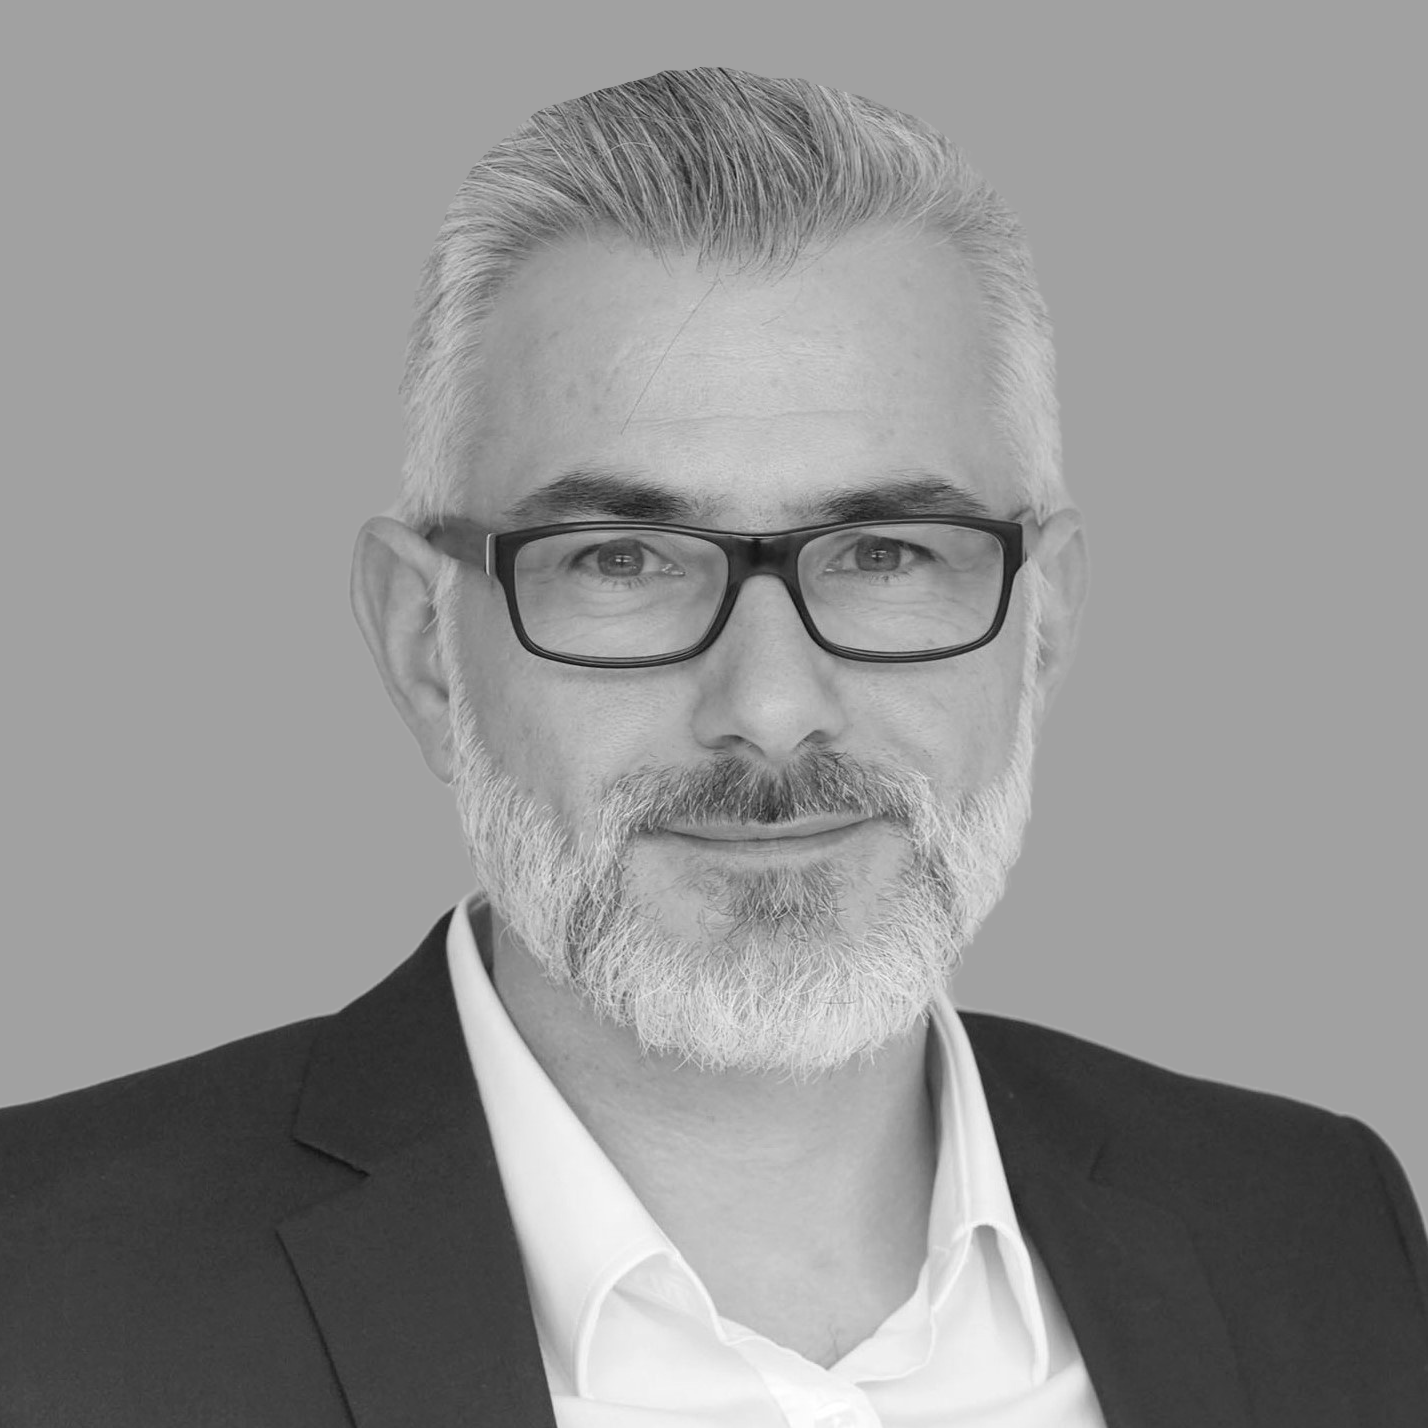 B/W headshot of Jeff Coatze, Managing Partner • MPK International • Johannesburg, South Africa